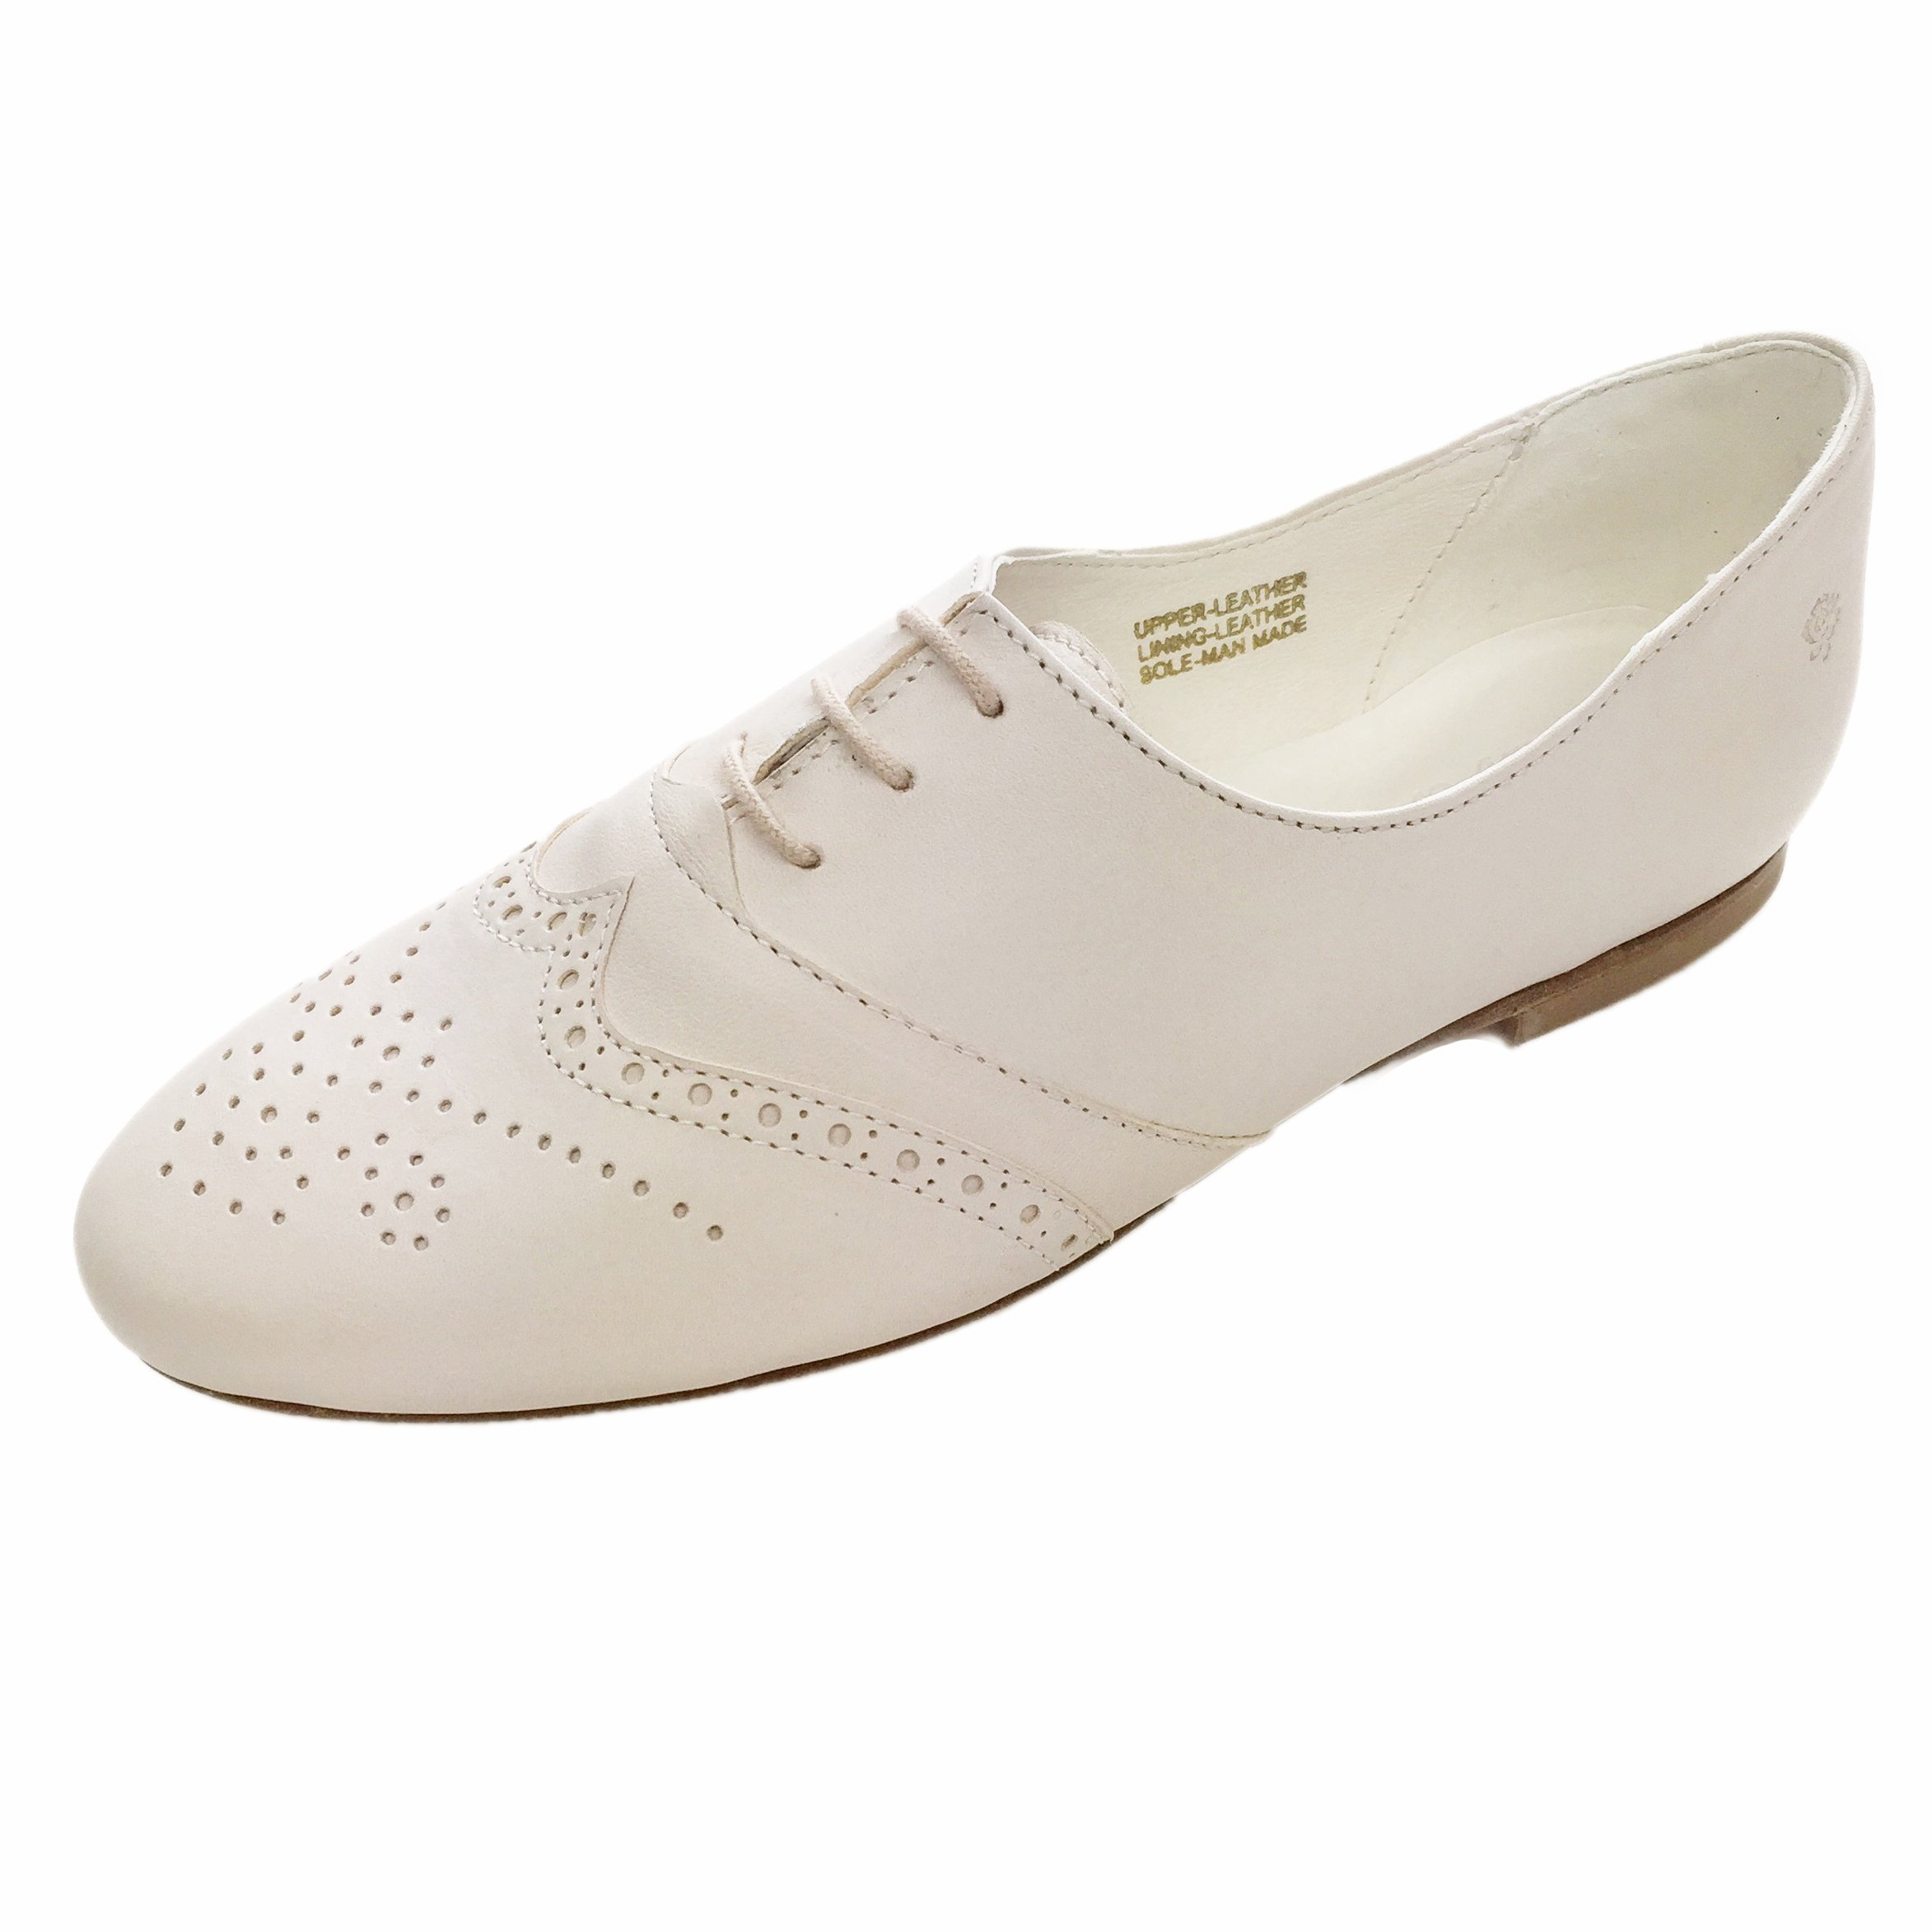 Chebran Oxford | Narrow Width | Made In Portugal | Off-White Leather Flats | Size 8 by Chebran